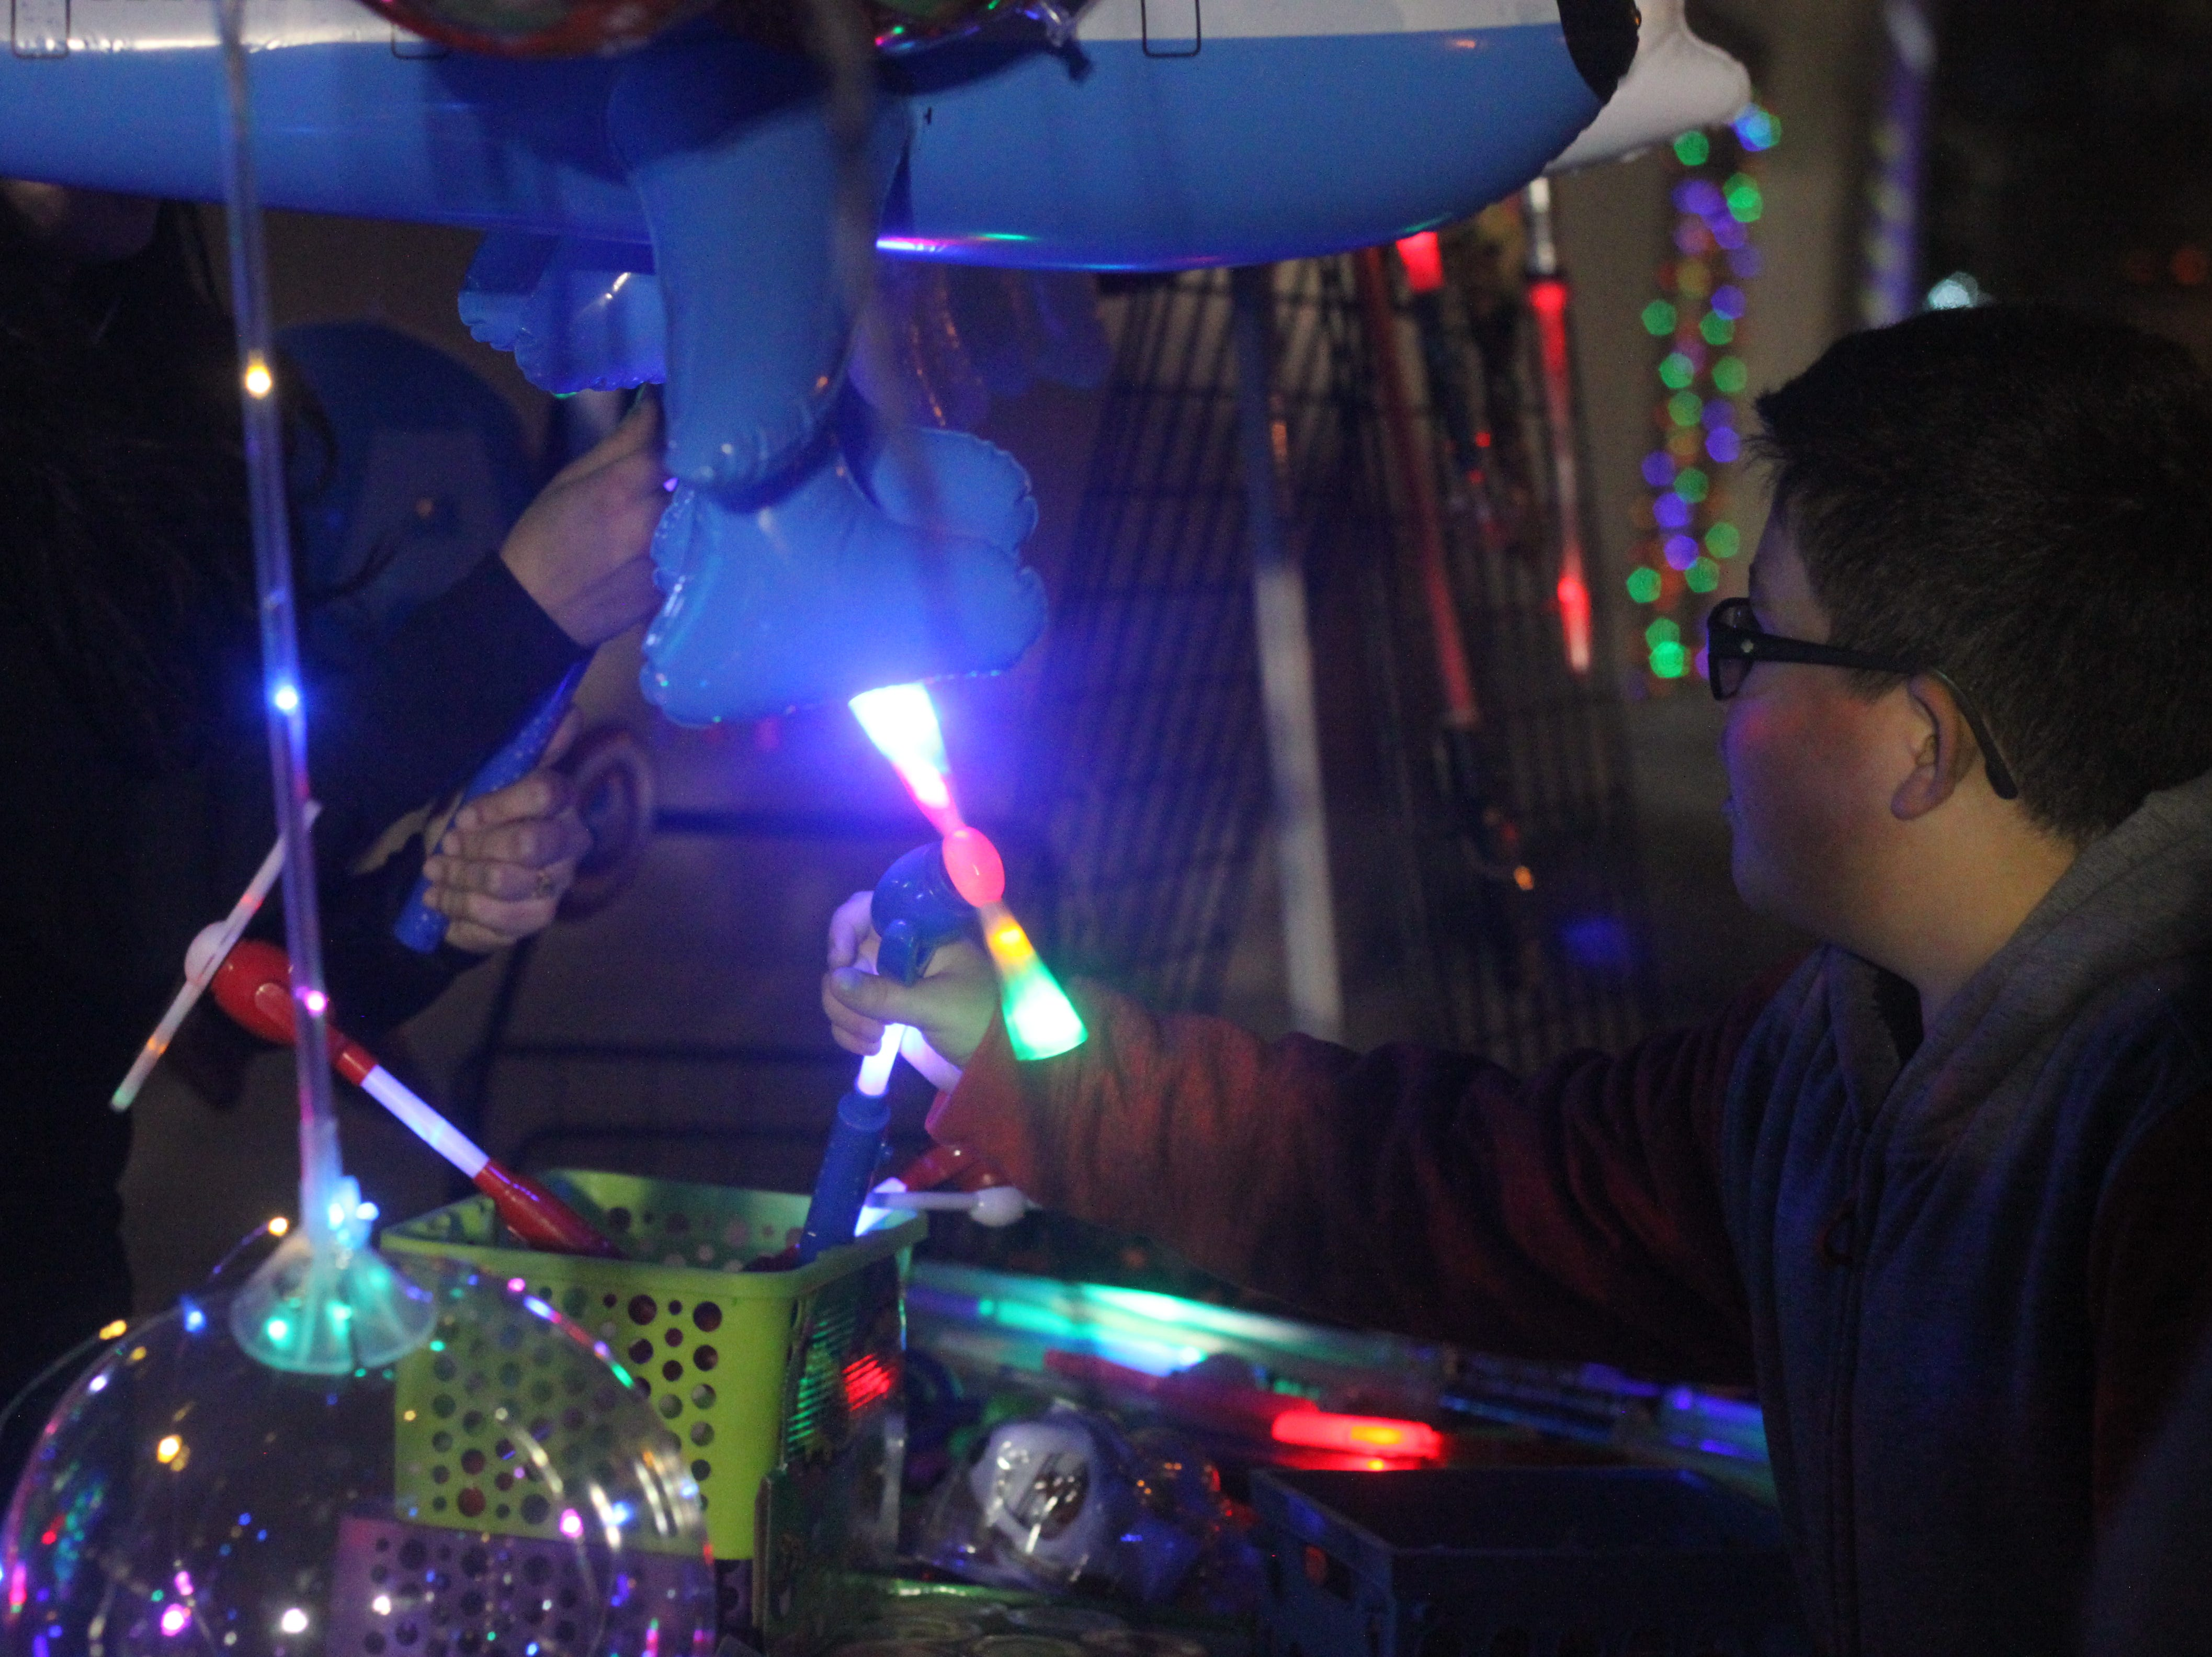 Attendees purchase toys at the annual Night of Lights event, Nov. 24, 2018 in Halagueno Arts Park.